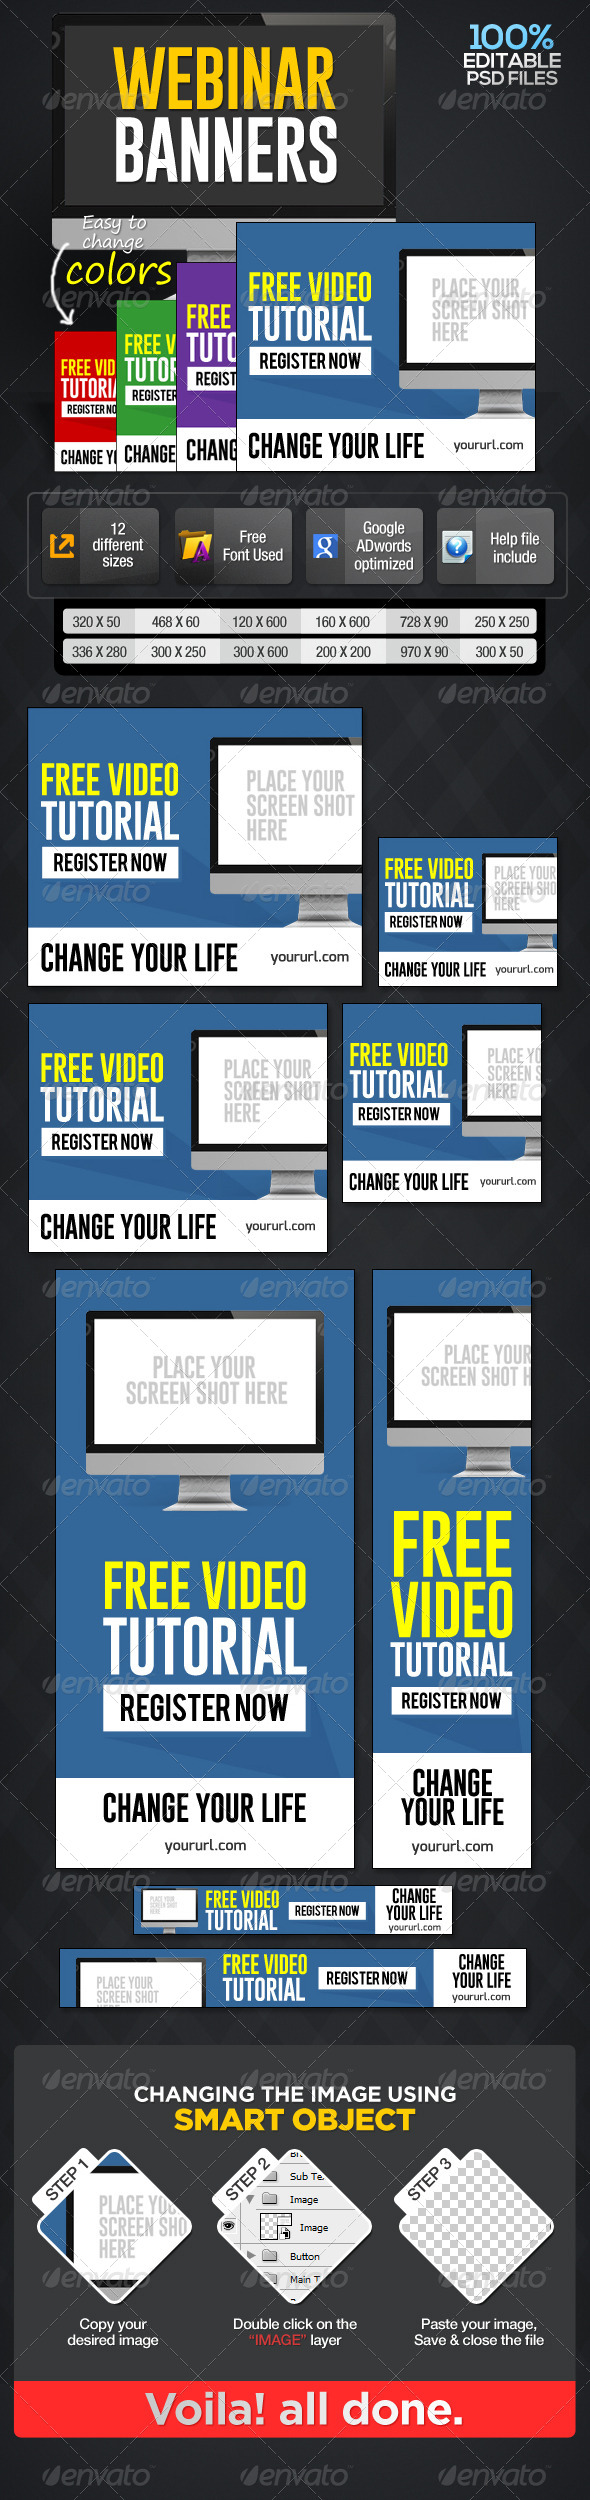 GraphicRiver Webinar Banners 7001139